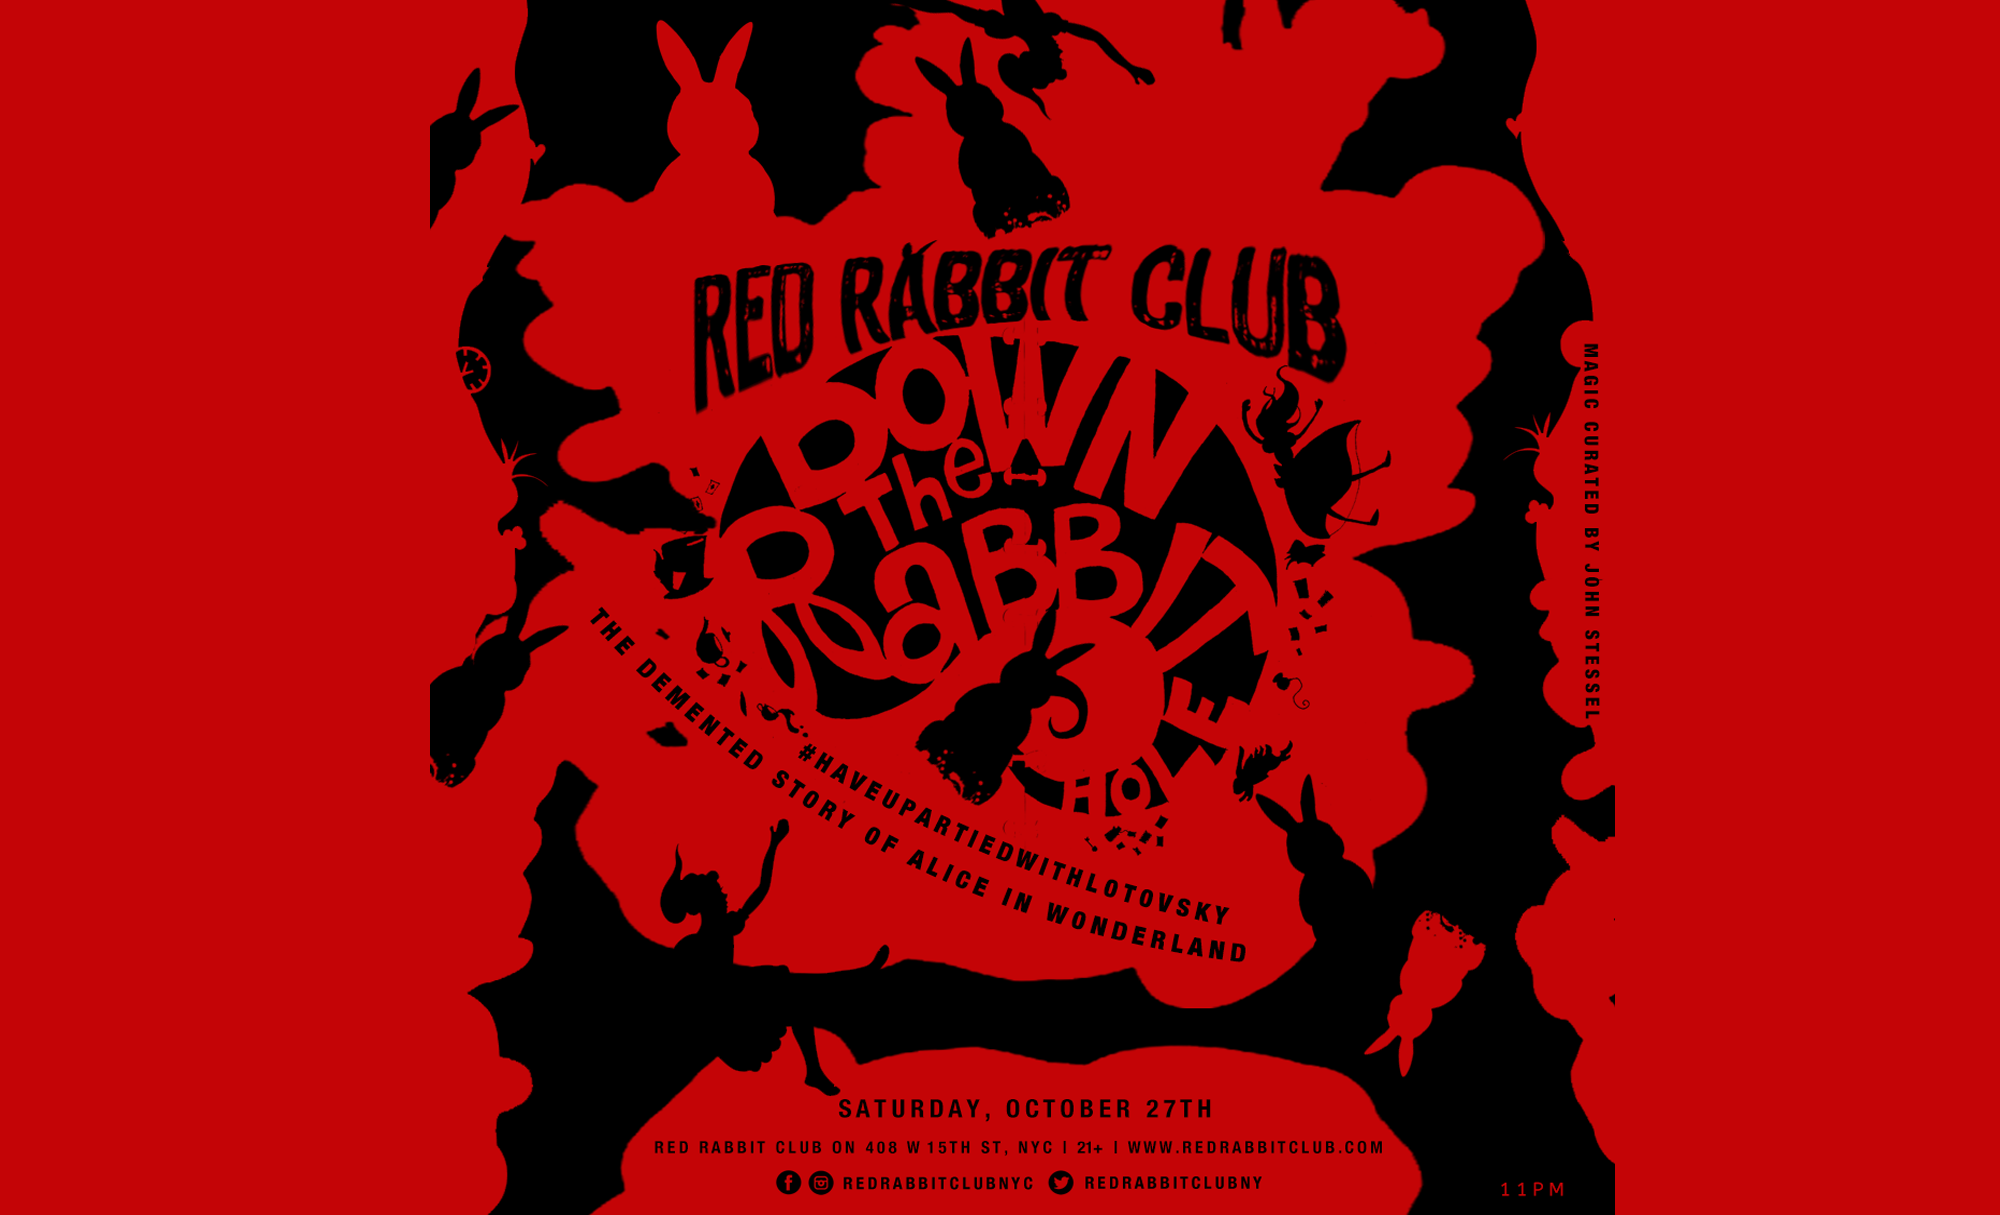 Red Rabbit Club NYC - Halloween Weekend - Down The Rabbit Hole - Oct 27